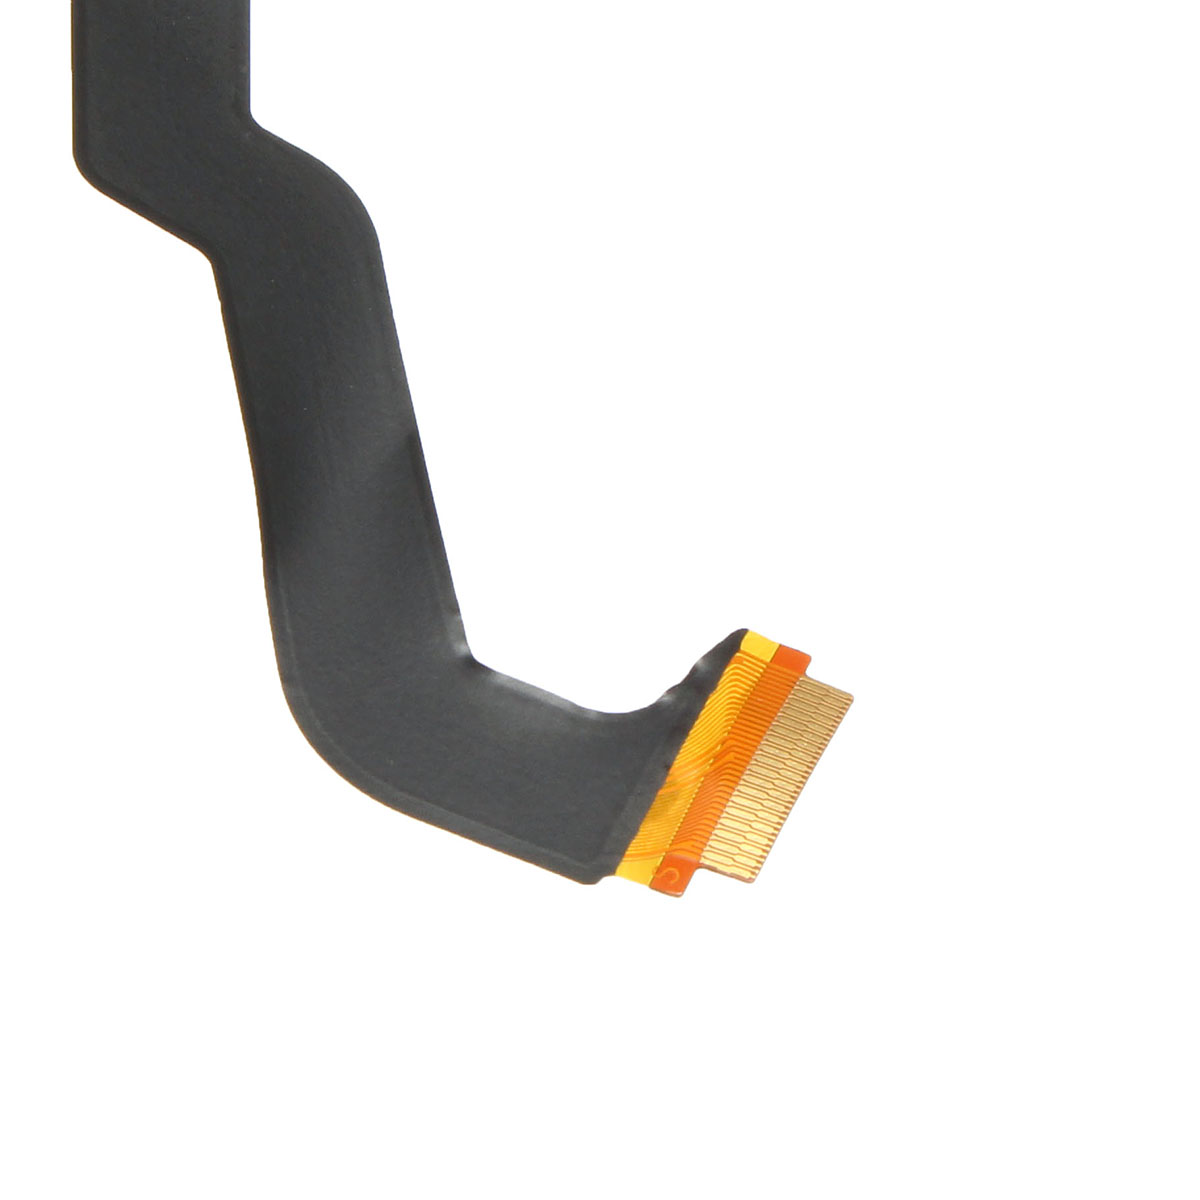 Rear Back Main Camera Lens Module With Flex Cable For Nintendo 3DS